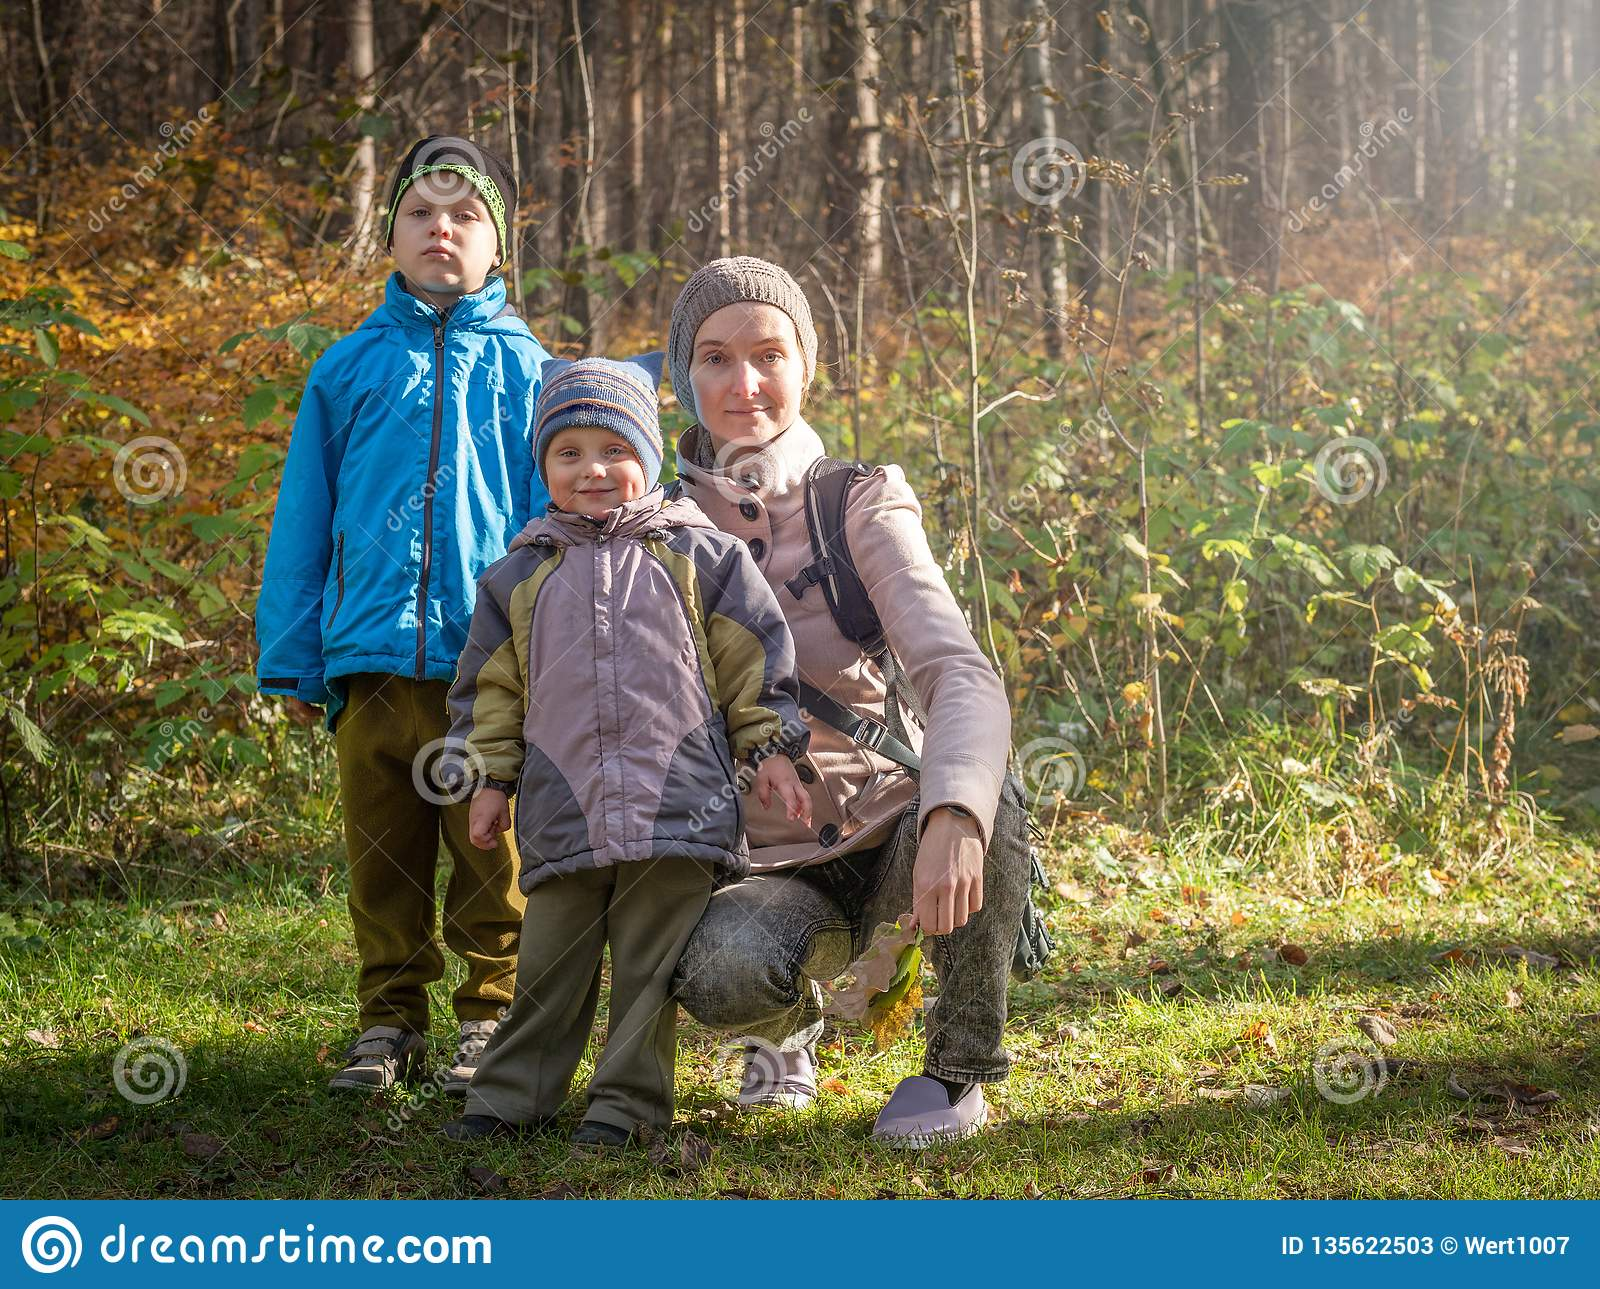 Mom with two children walking in the autumn forest